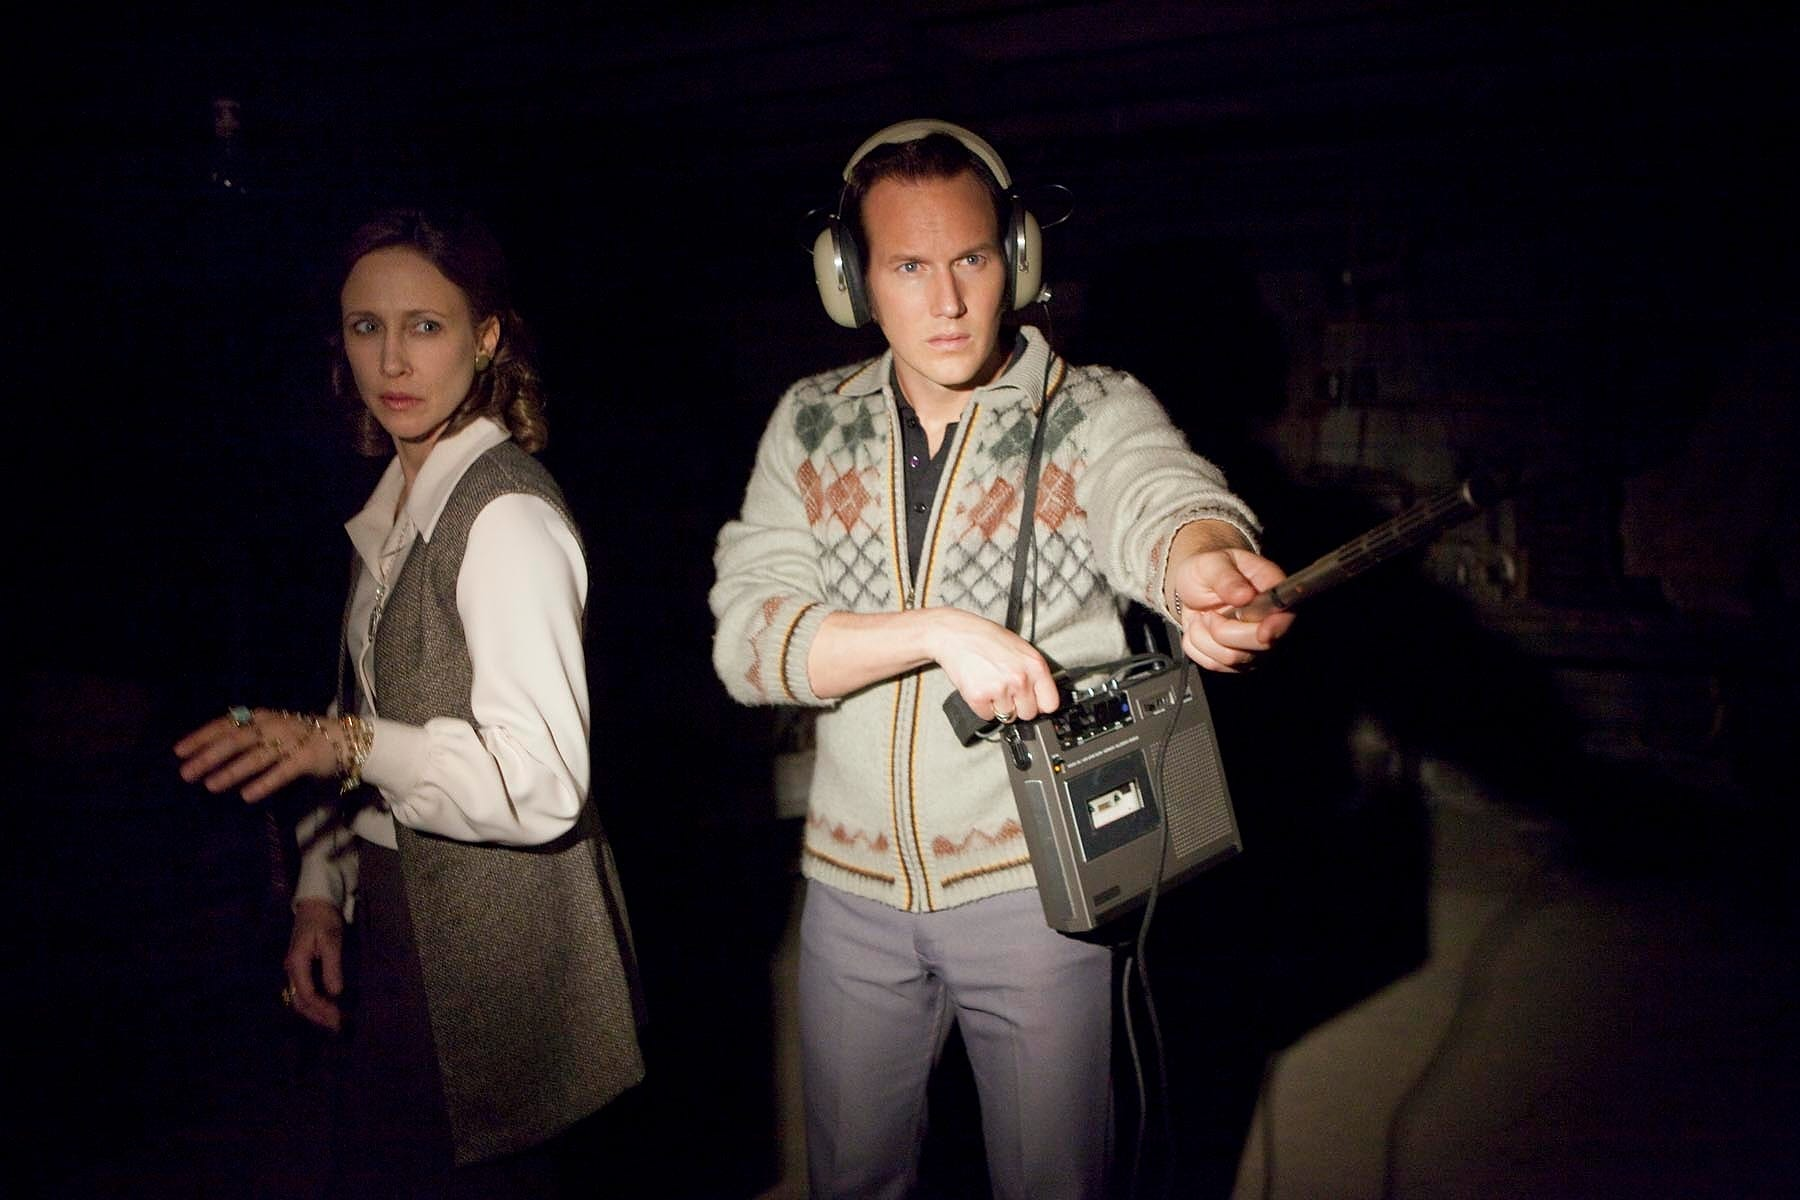 Rhode Island home that inspired 'The Conjuring' sells for $1.2 million